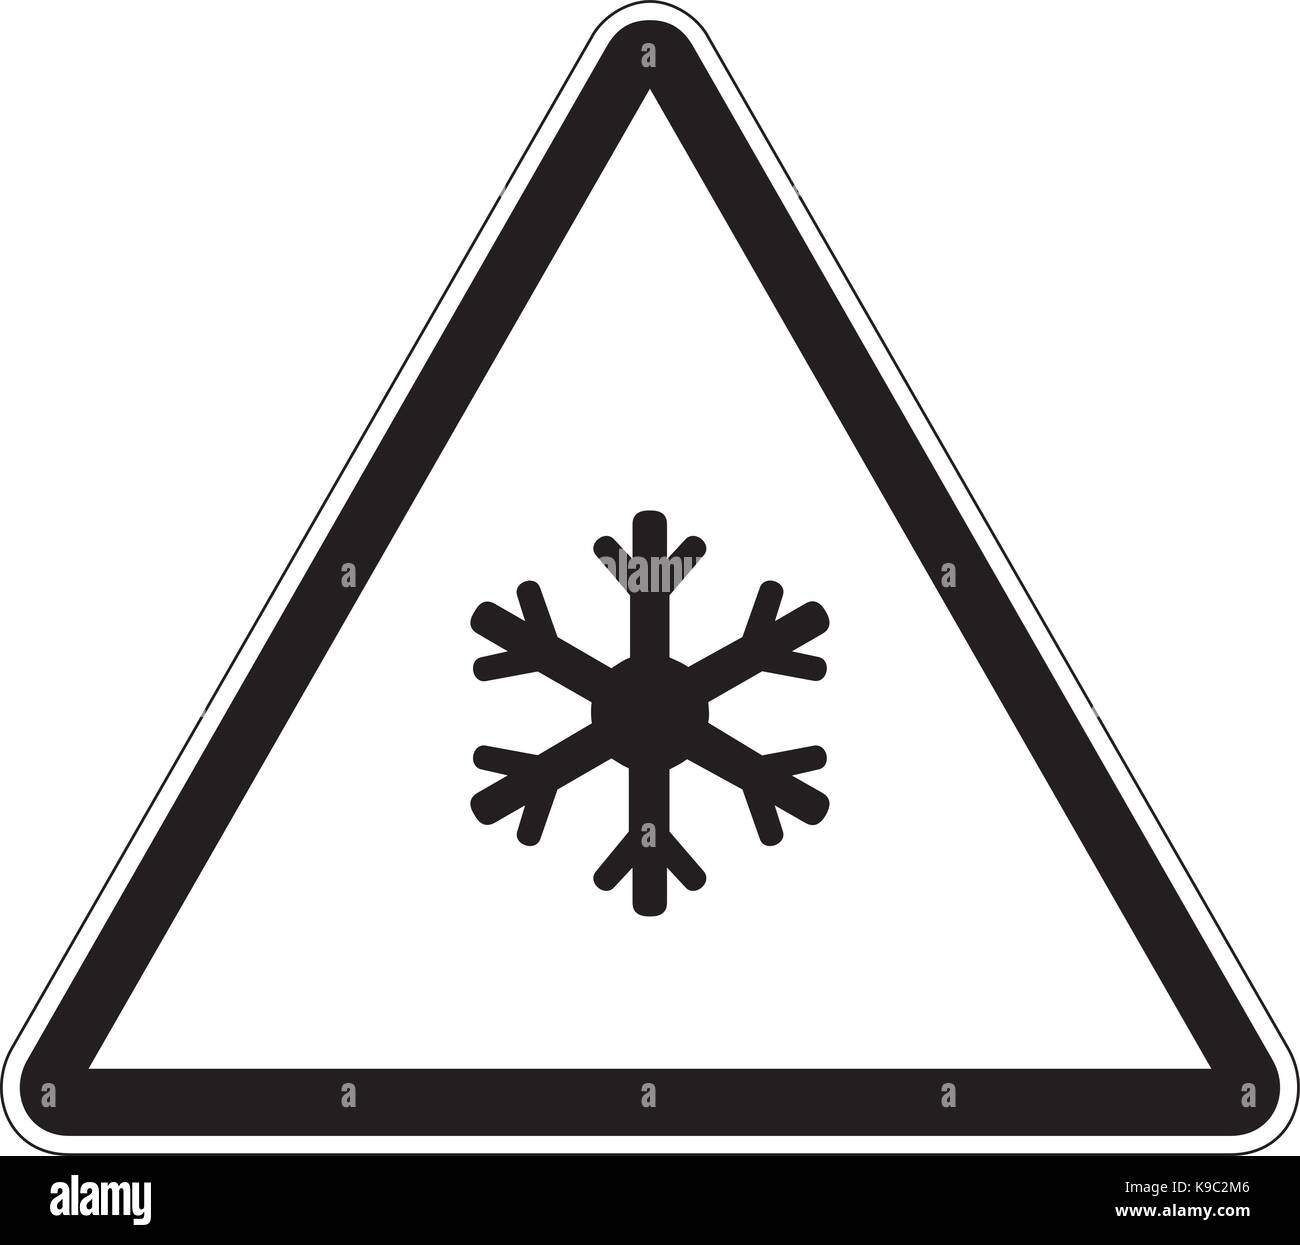 Low temperature warning sign illustration - Stock Vector